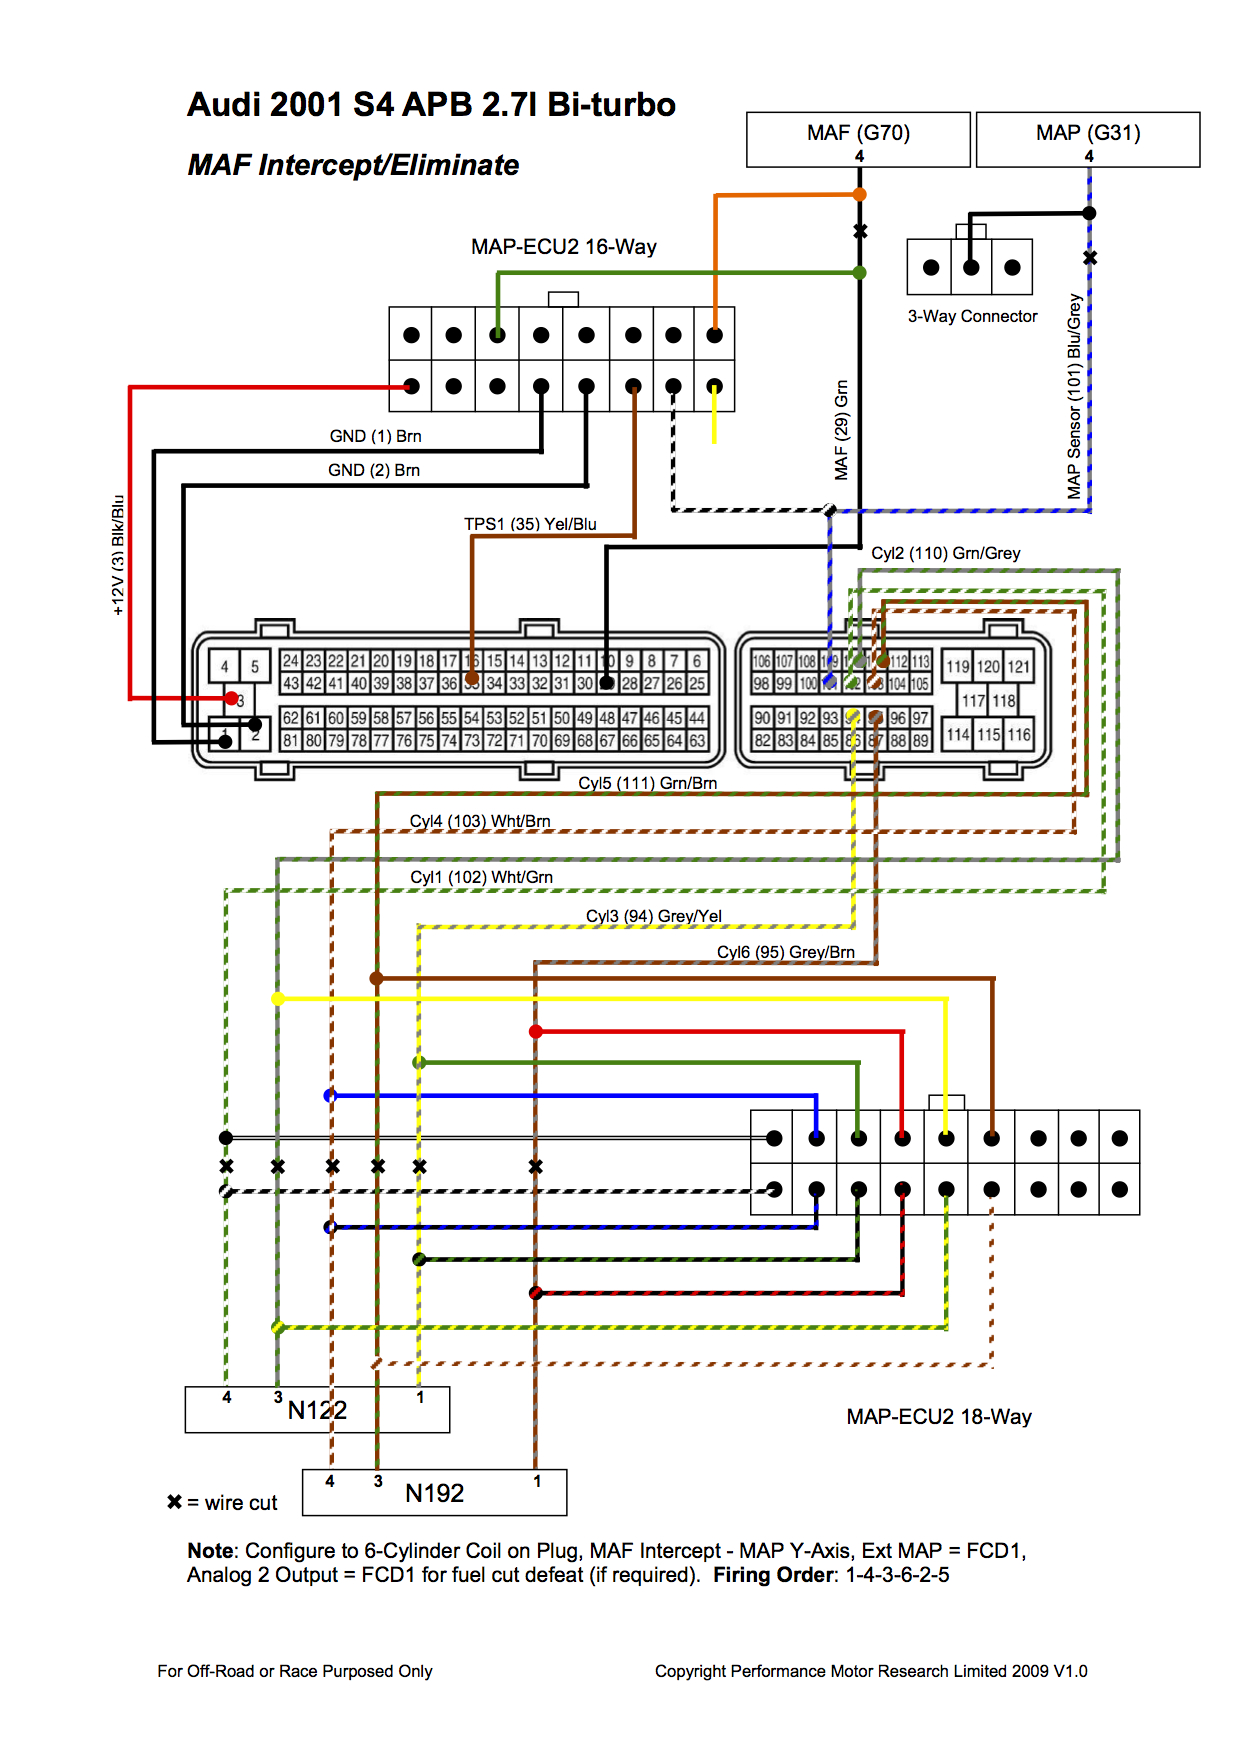 Ecu Pinout Diagram Wiring Diagrams Source Rs 232 Schematic Rs232